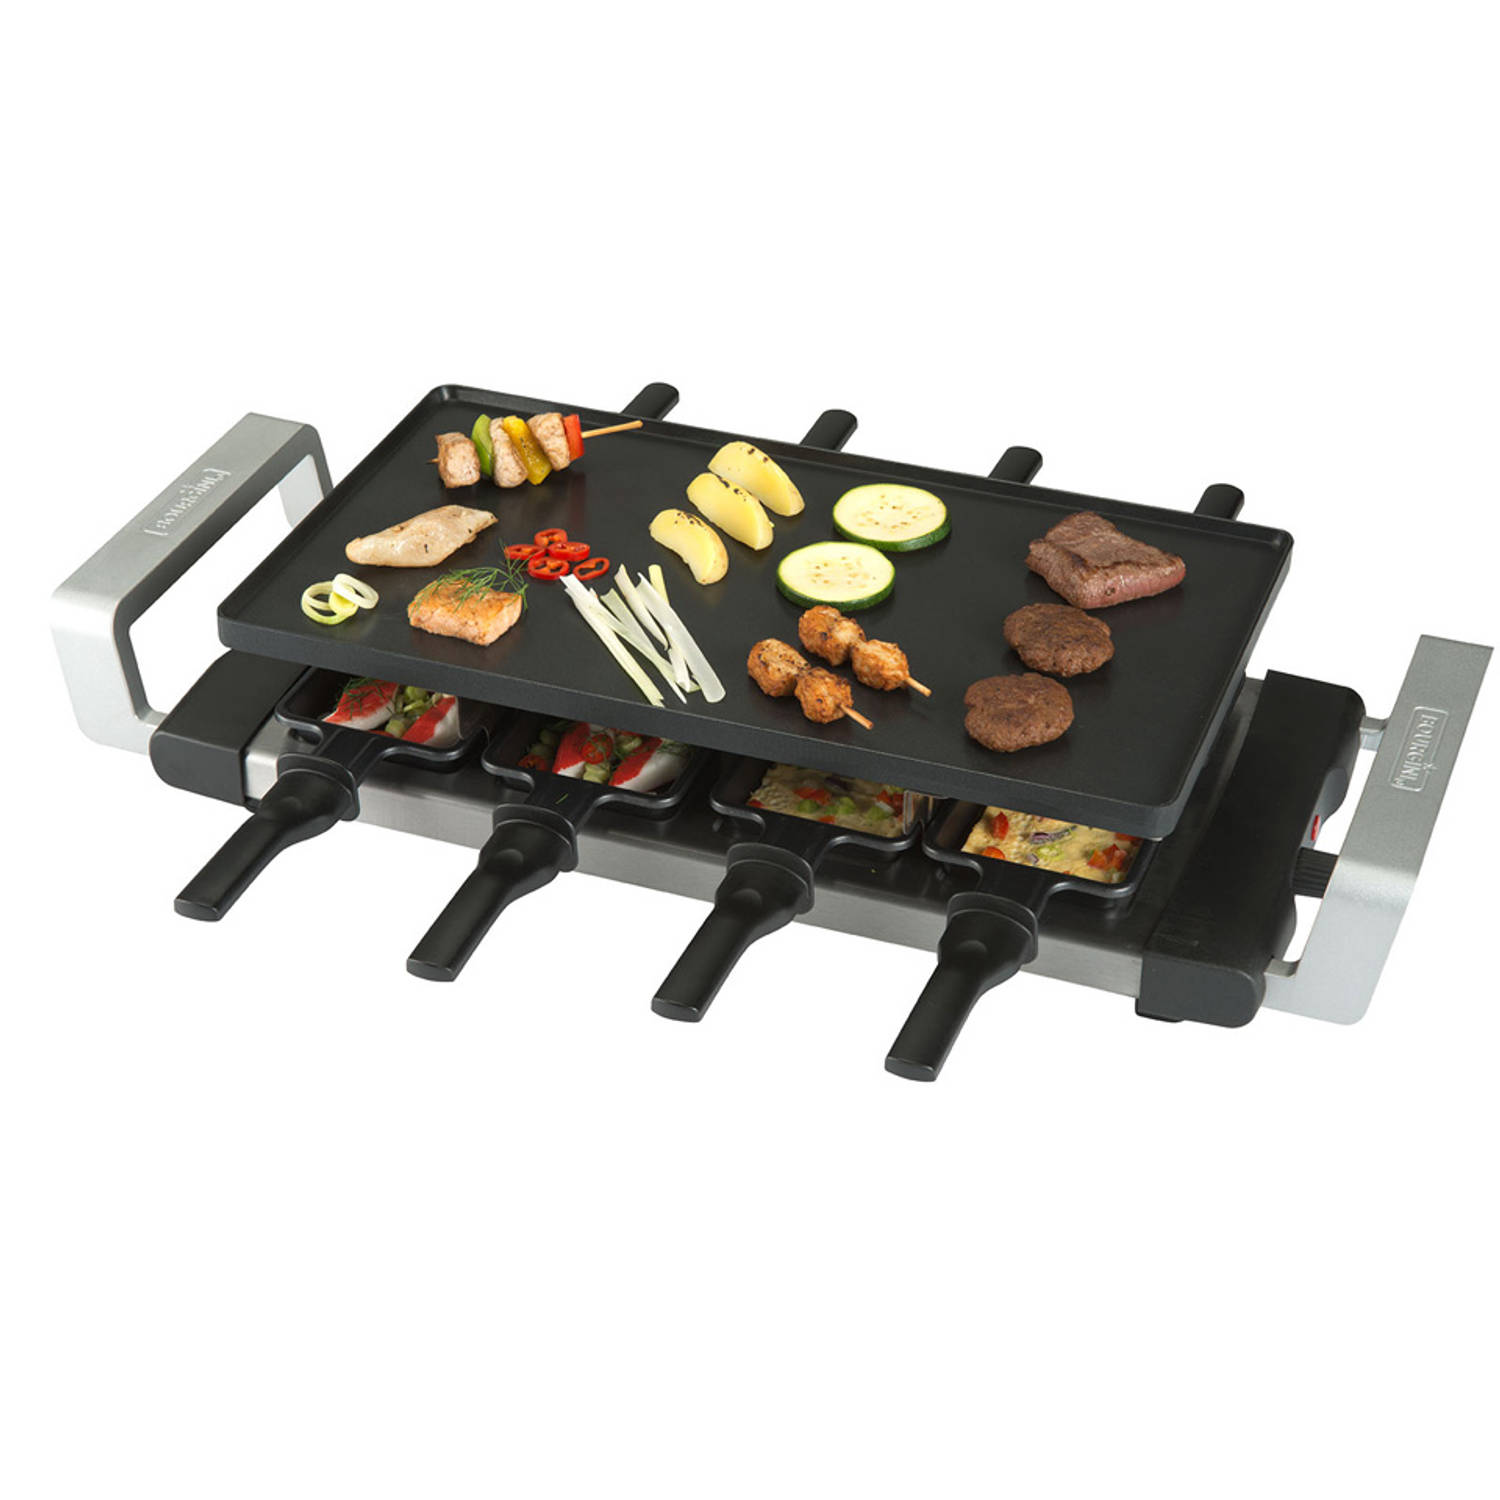 Bourgini gourmette/raclette/grill 16.1010